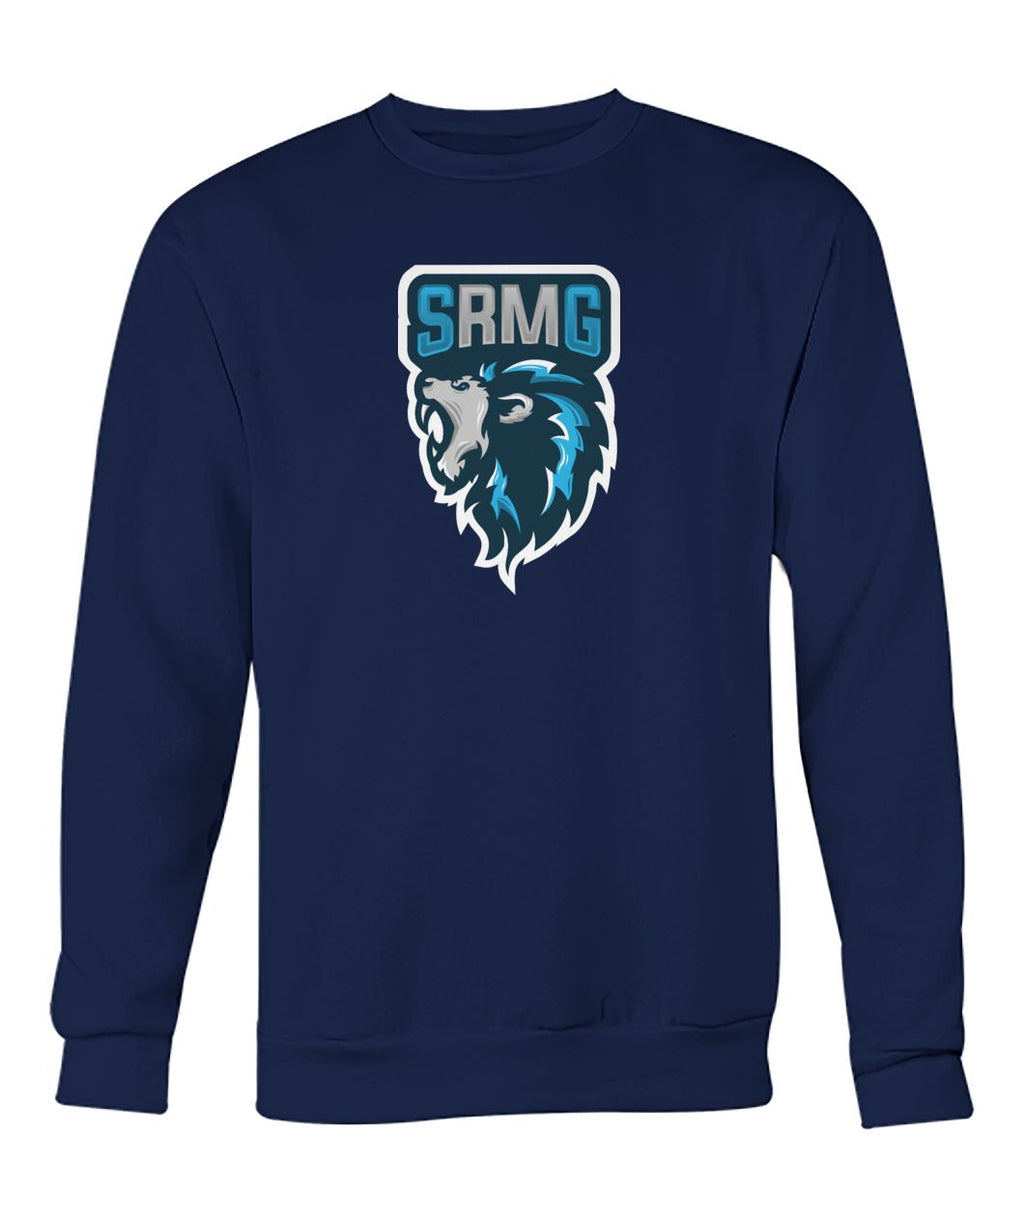 SRM Gaming Mascot Crew Neck Sweater (5 Color Options)